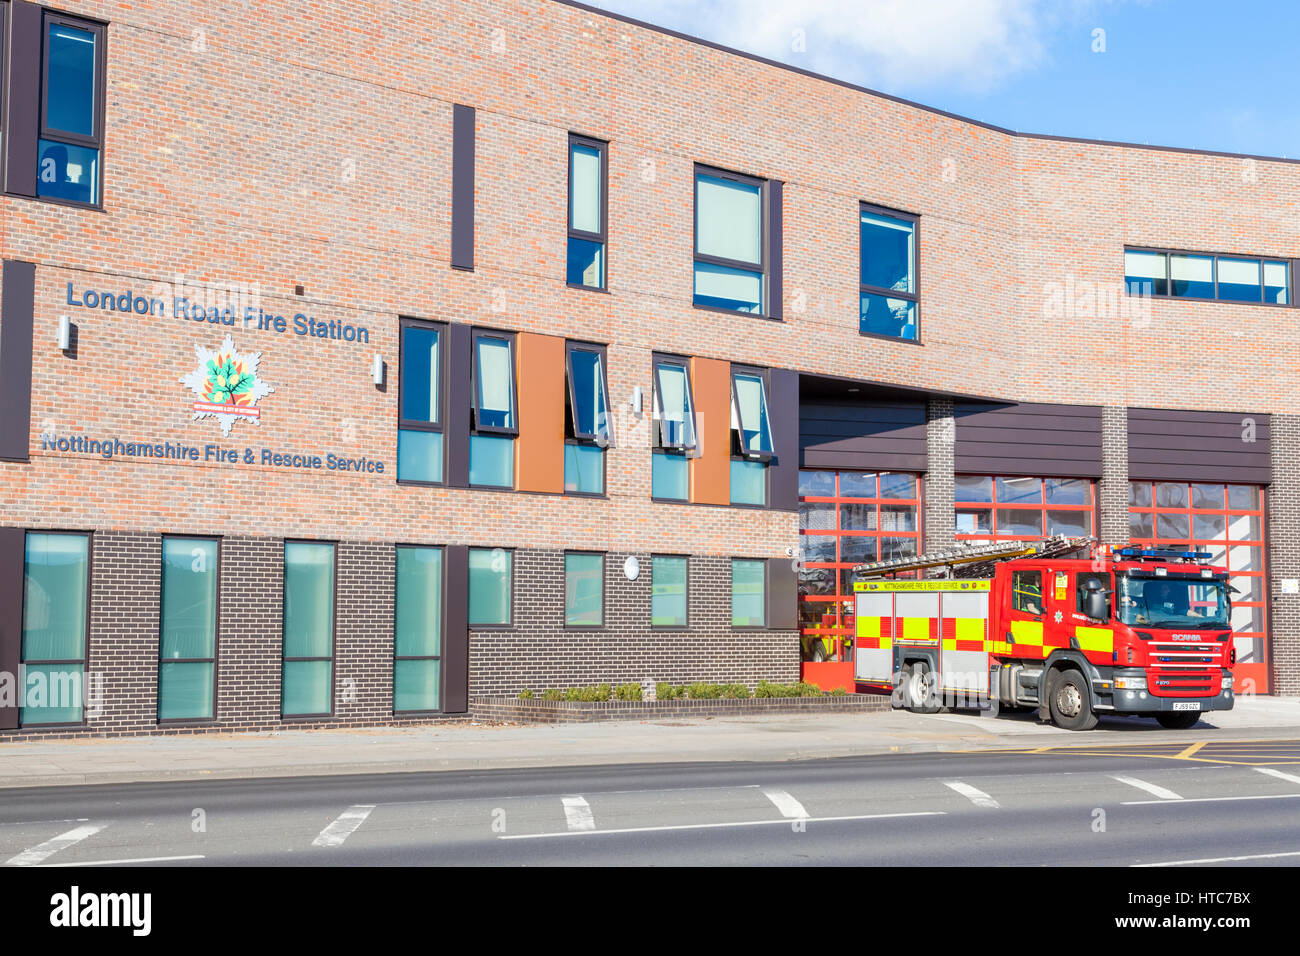 Fire engine at London Road Fire Station, Nottinghamshire Fire and Rescue Service, Nottingham, England, UK - Stock Image